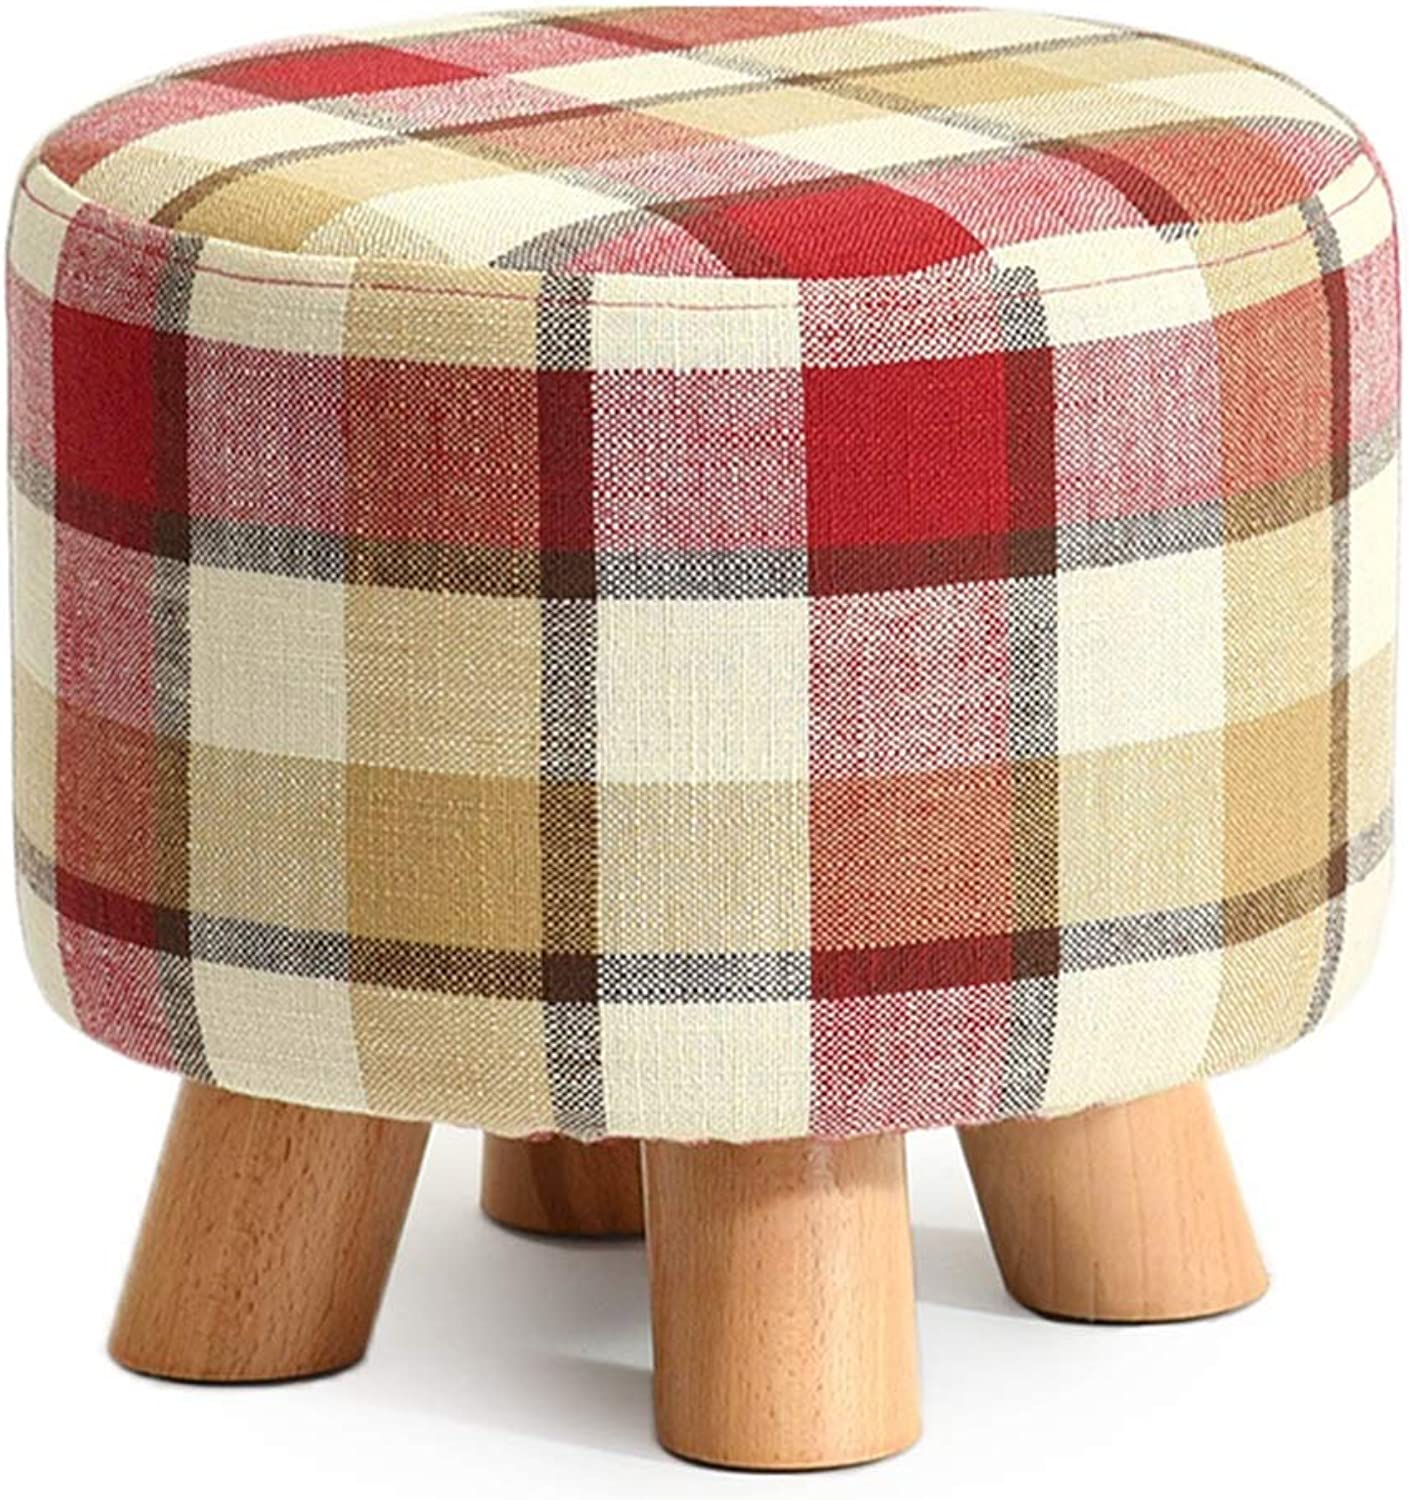 ZHAOYONGLI Stools Footstool Solid Wood shoes Bench Fashion shoes Stool Creative Square Stool Fabric Stool Stool Sofa Stool Coffee Table Bench Home Stool Creative Solid Durable Long Lasting